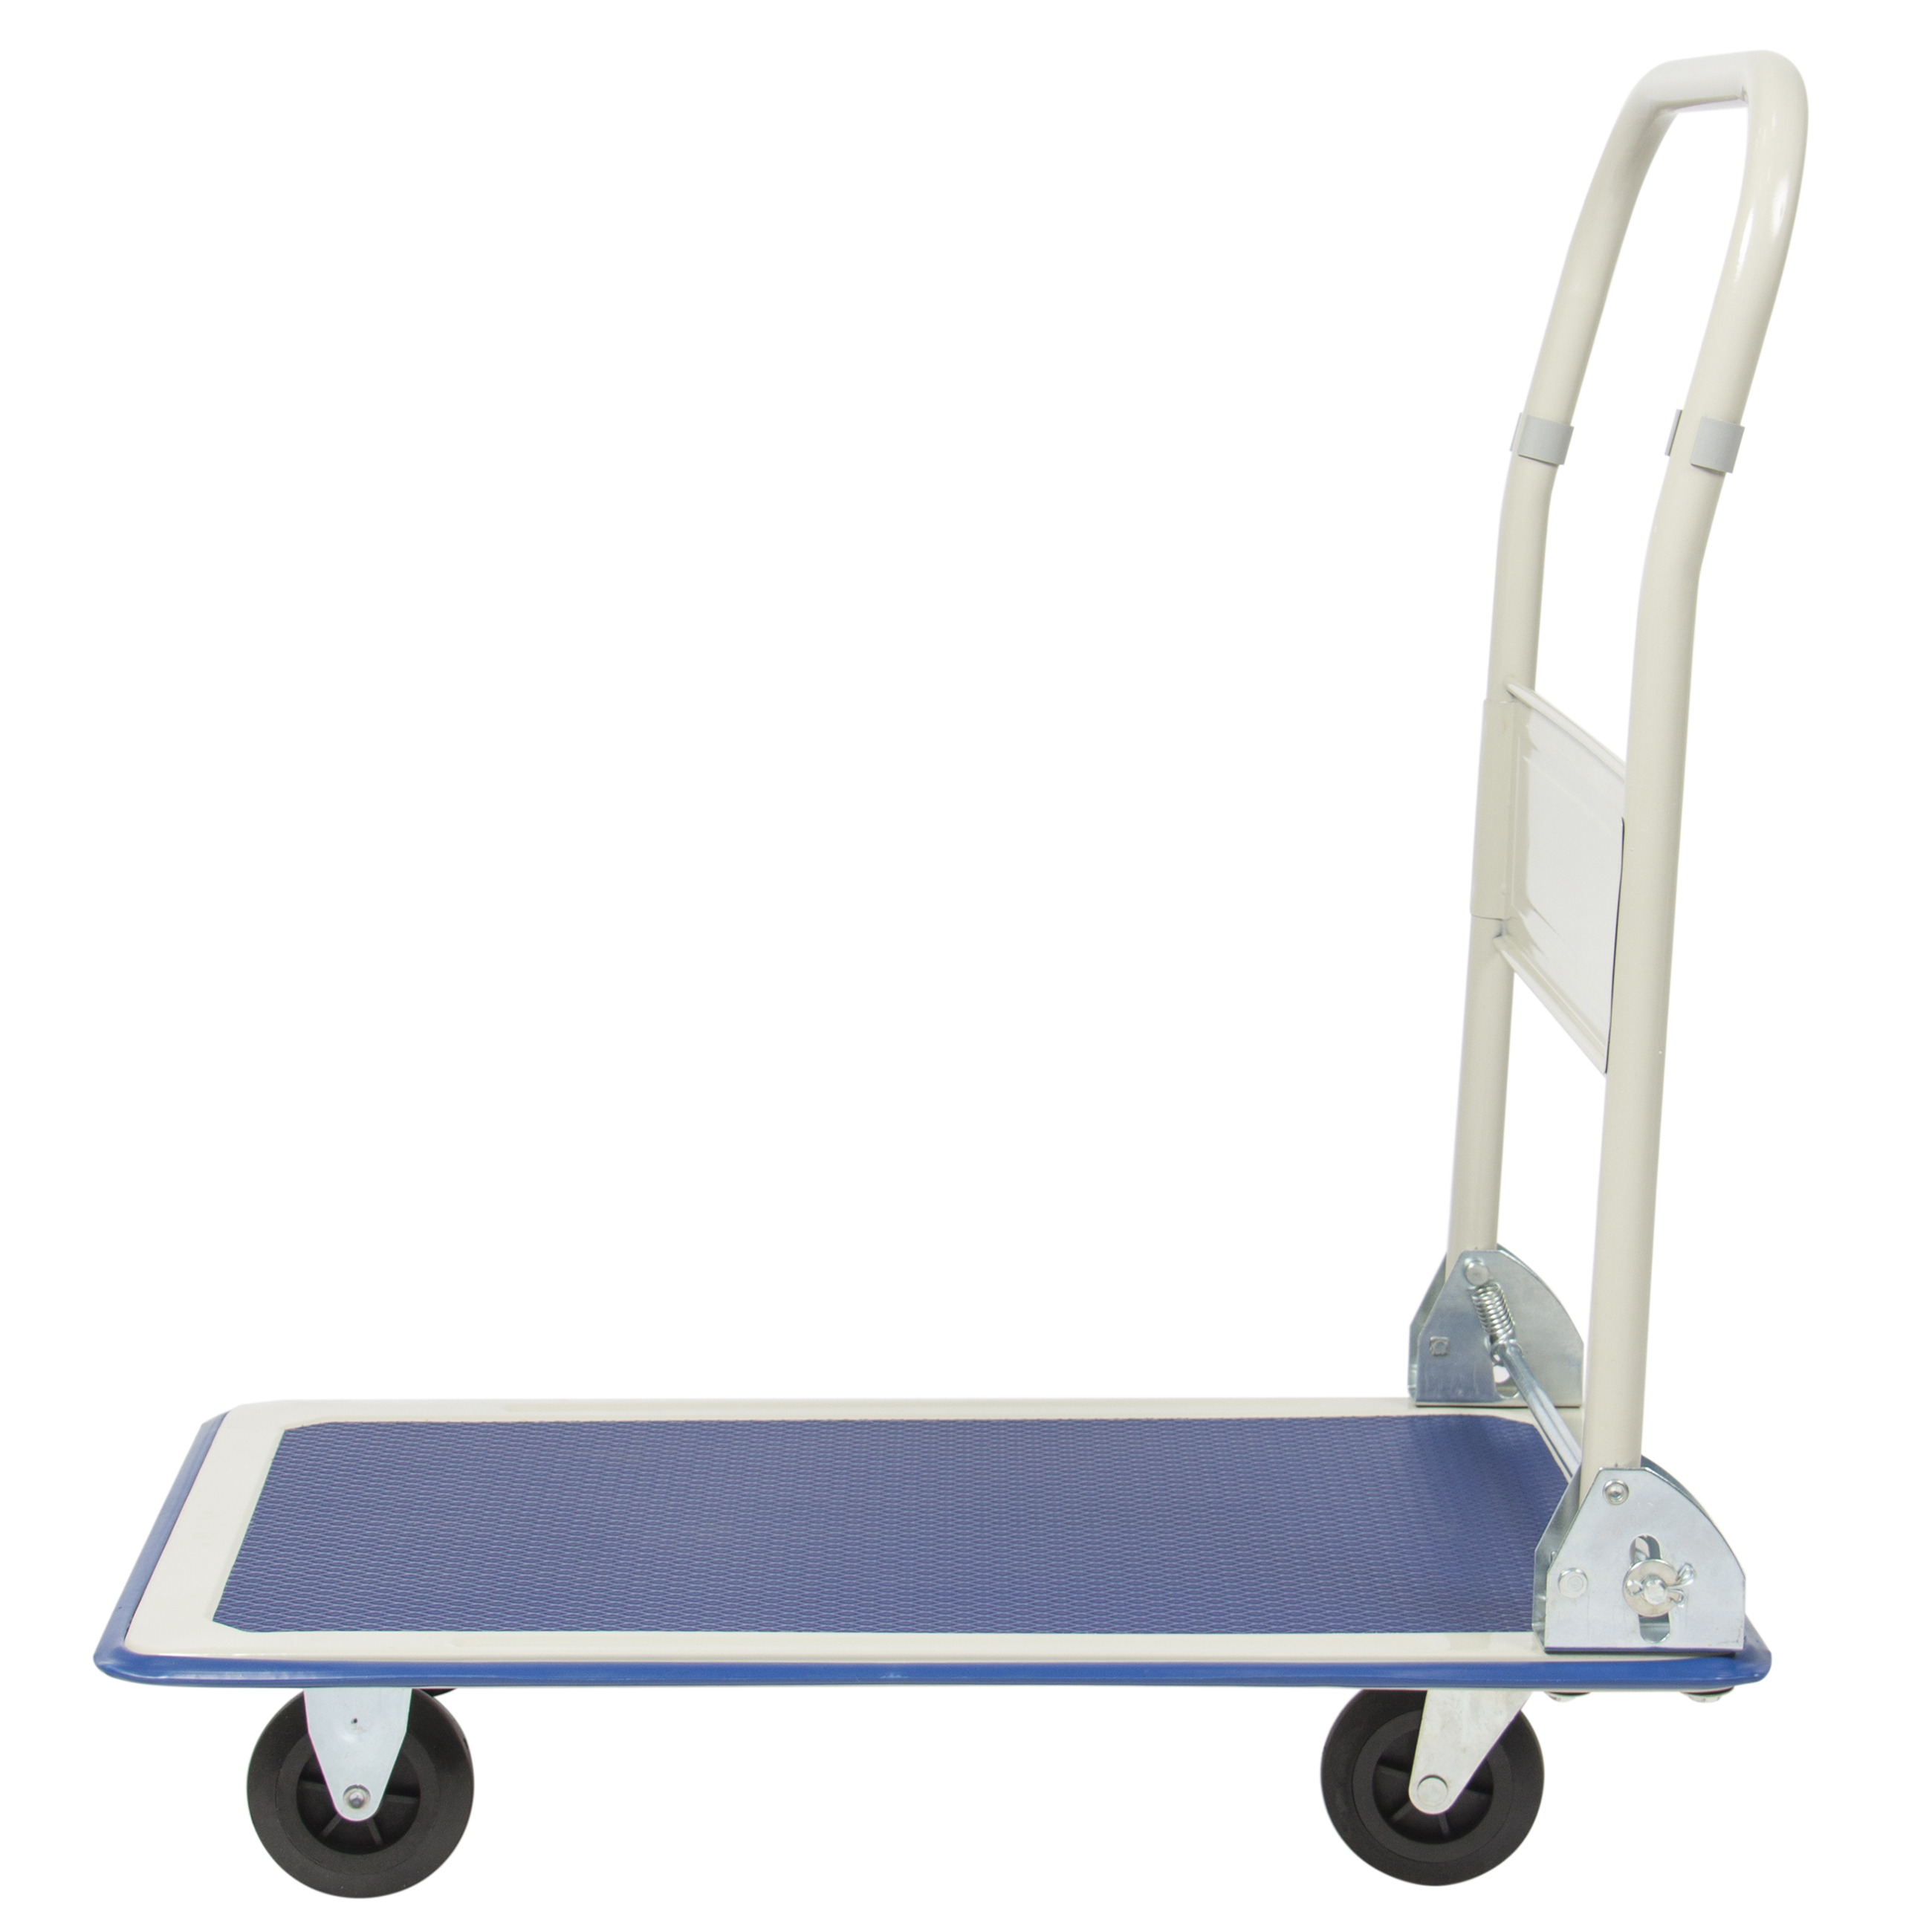 c3e26e4f91c5 Best Choice Products 4-Wheel Foldable Rolling Warehouse Moving Flatbed  Platform Dolly Push Cart w/ 660lb Capacity, Non-Slip Surface - Blue